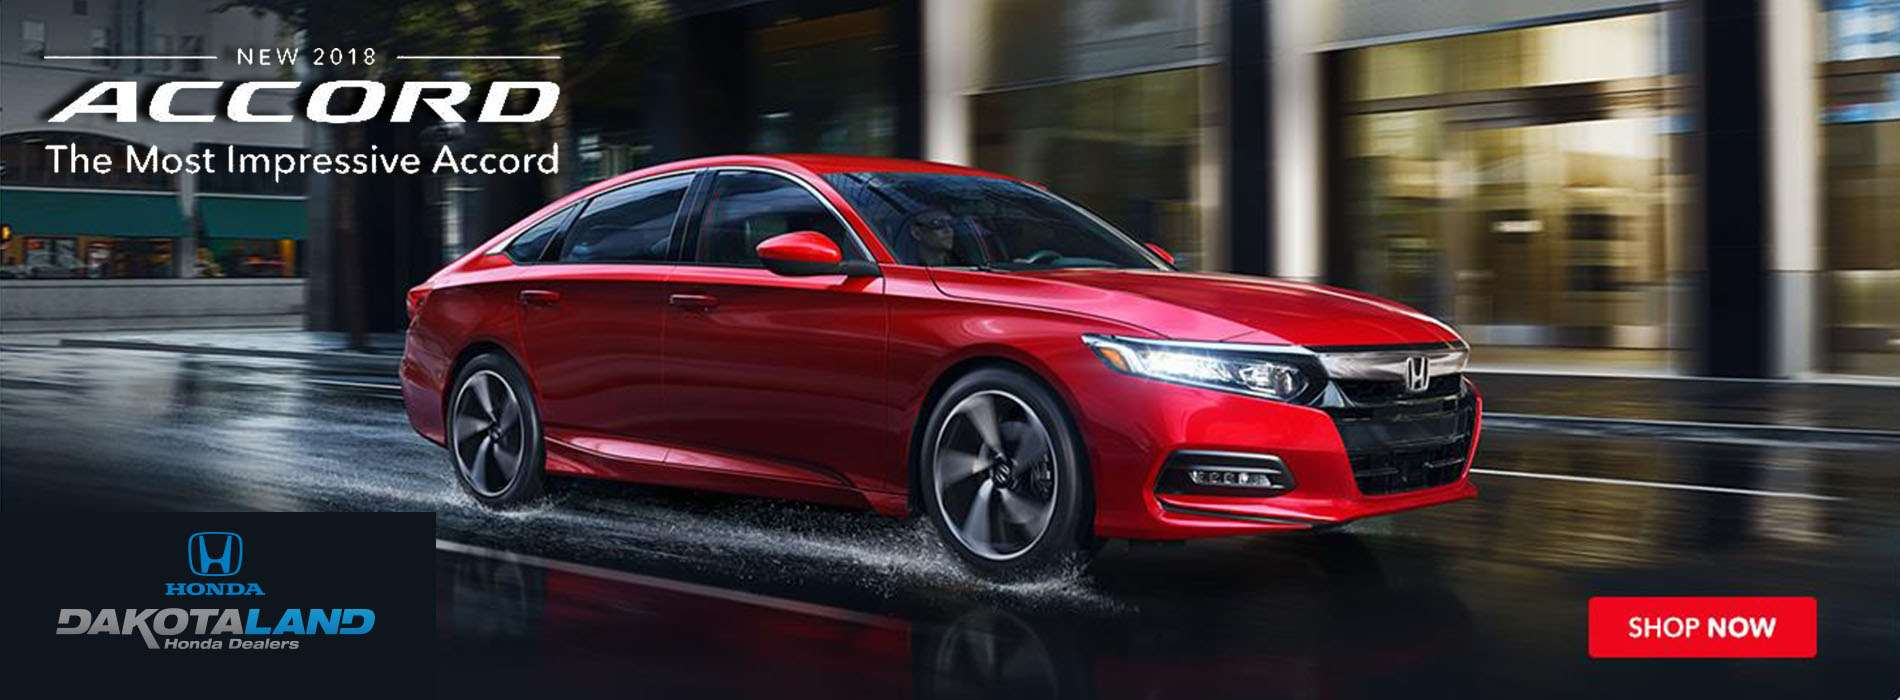 DLH - New 2018 Accord - June '18